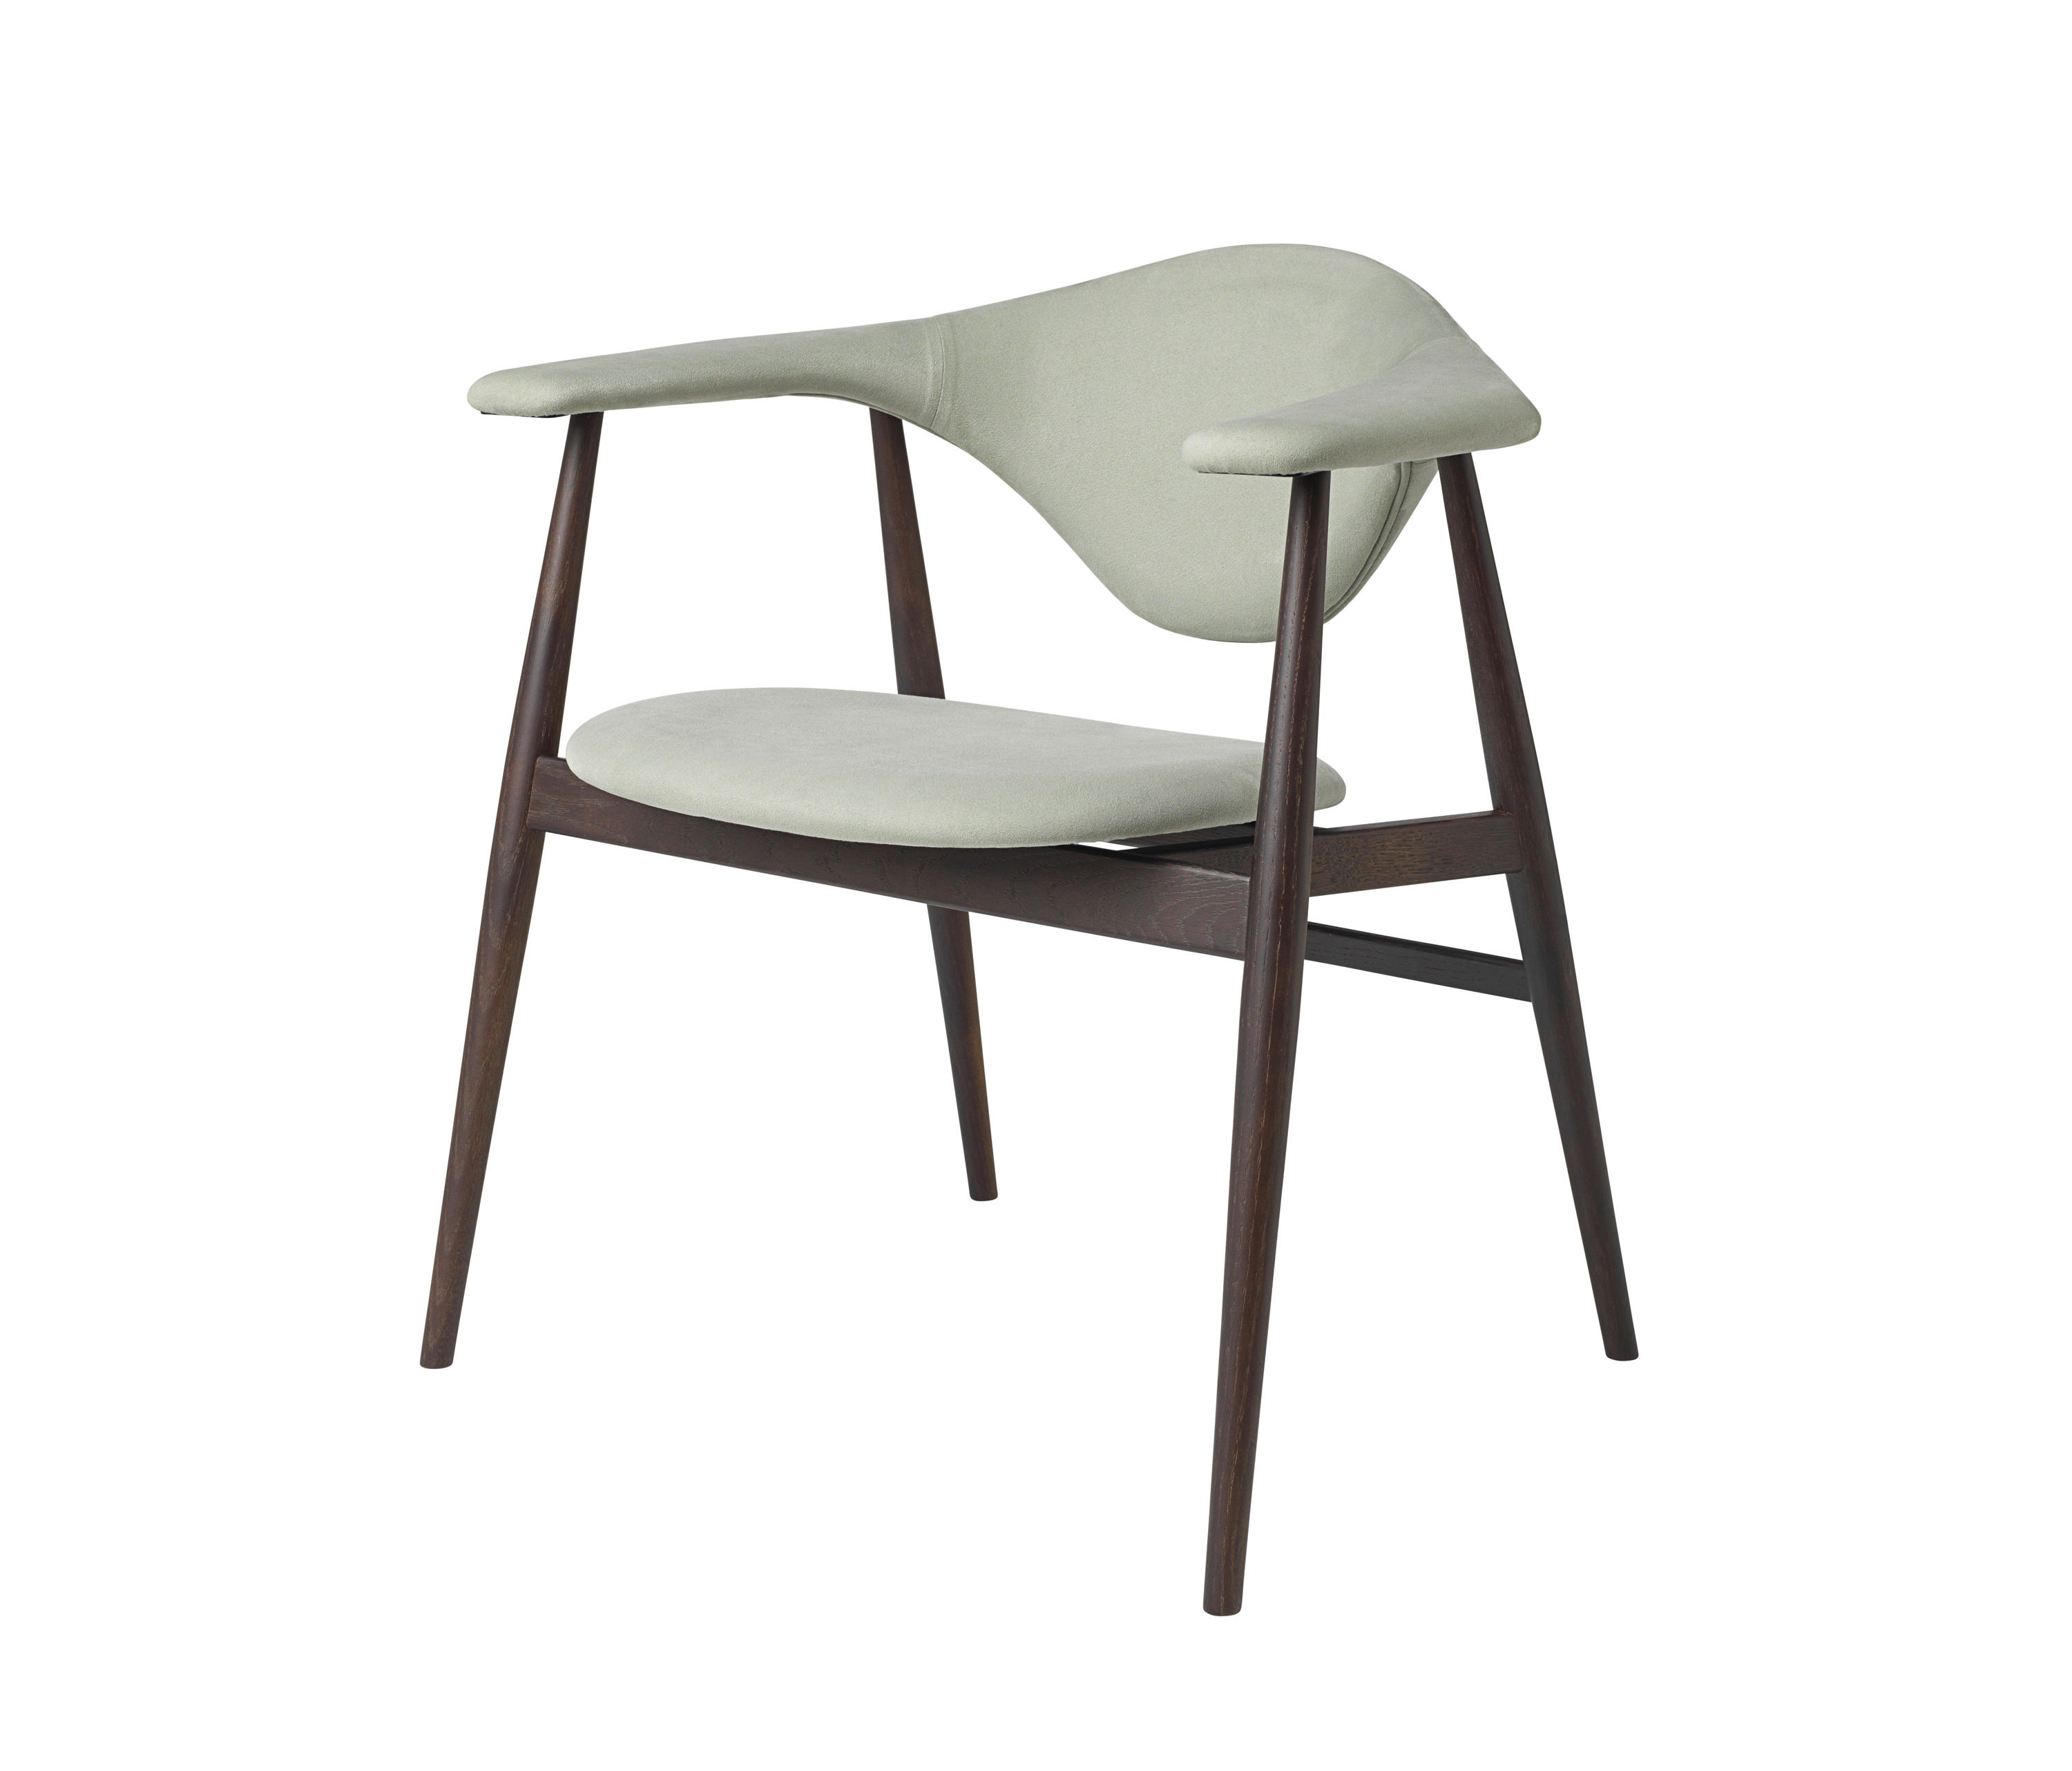 Wood Base Chairs ~ Masculo chair wood base visitors chairs side